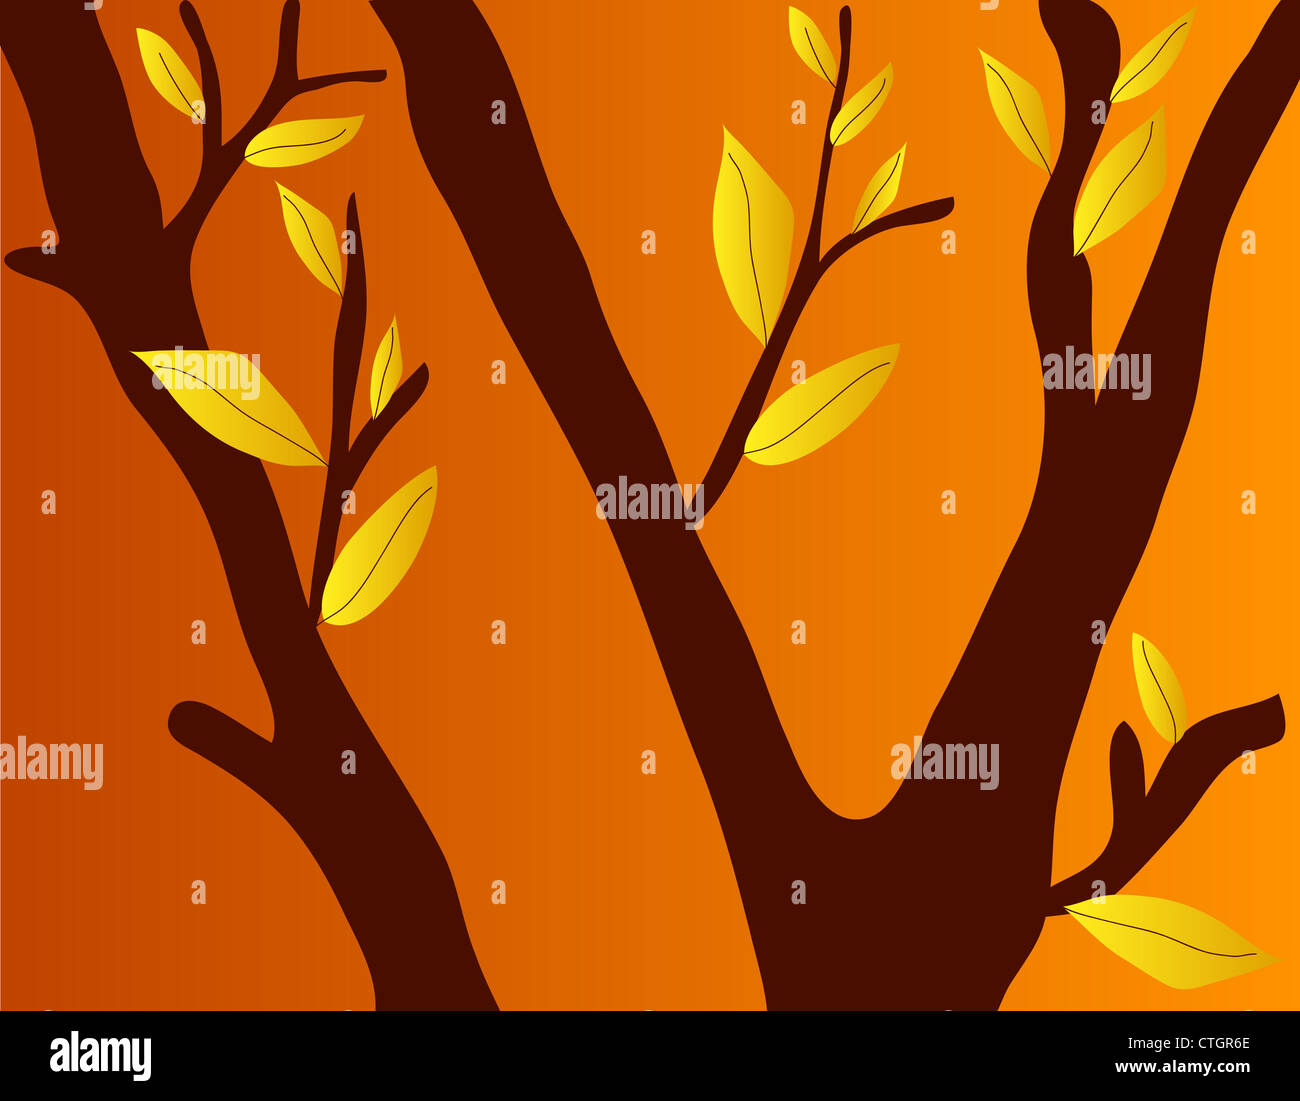 Fall season leaves on tree branches Stock Photo